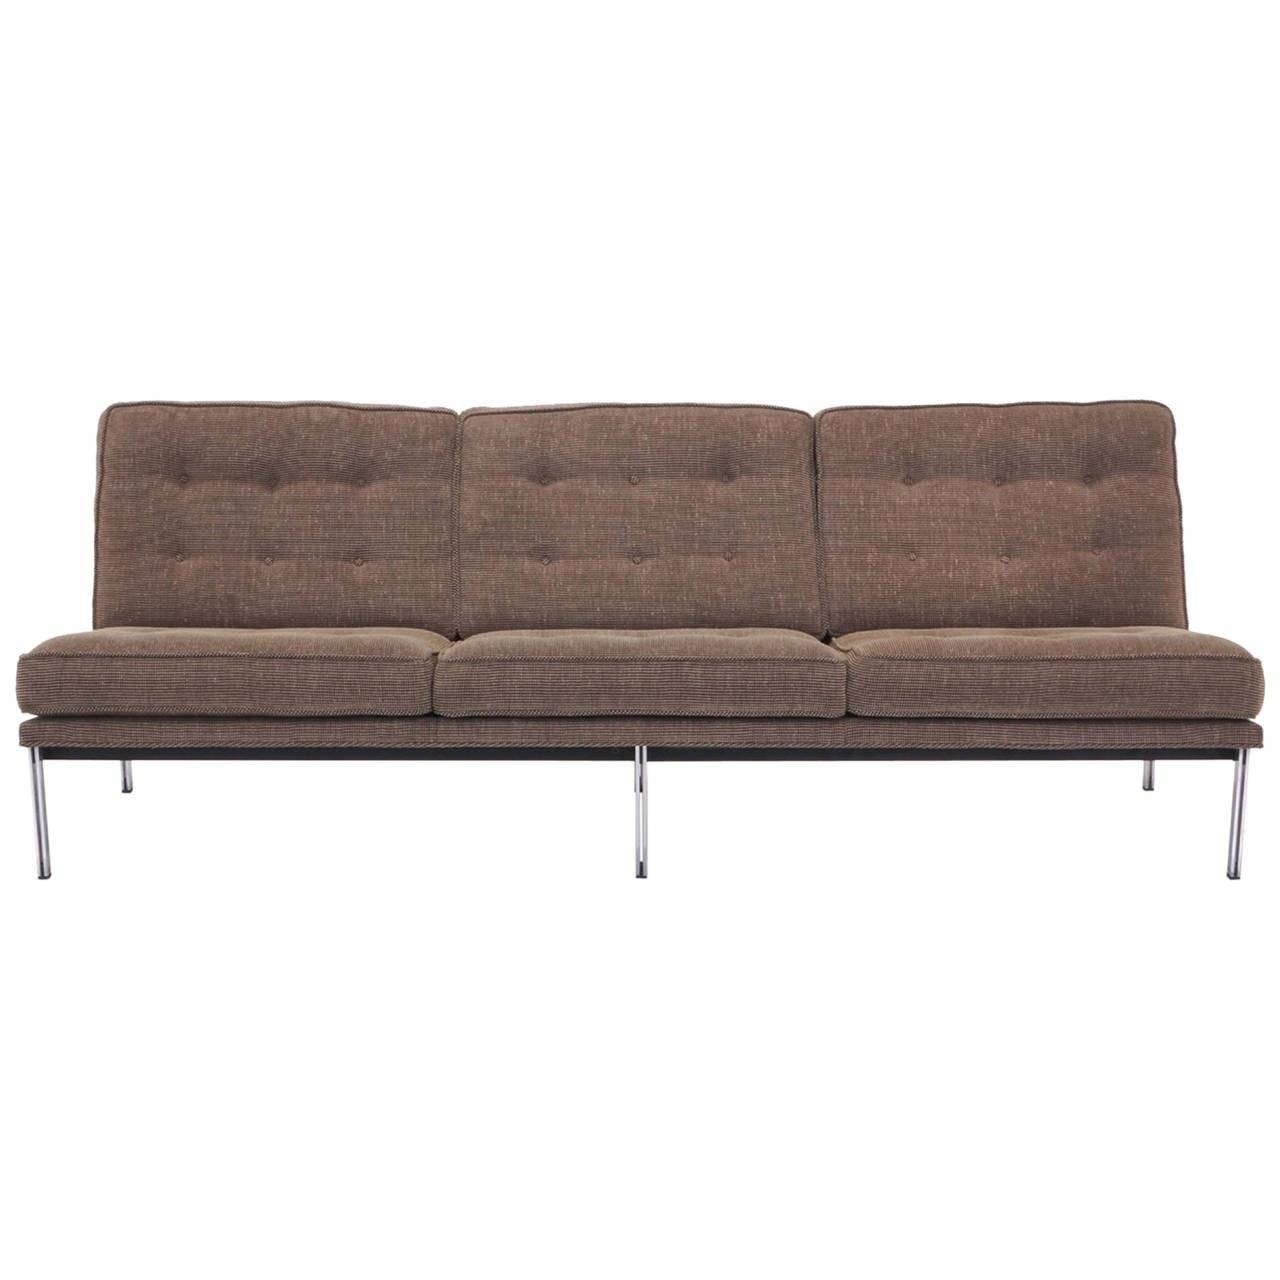 Florence Knoll Parallel Bar Three Seat Armless Sofa At 1Stdibs with regard to Florence Grand Sofas (Image 8 of 25)